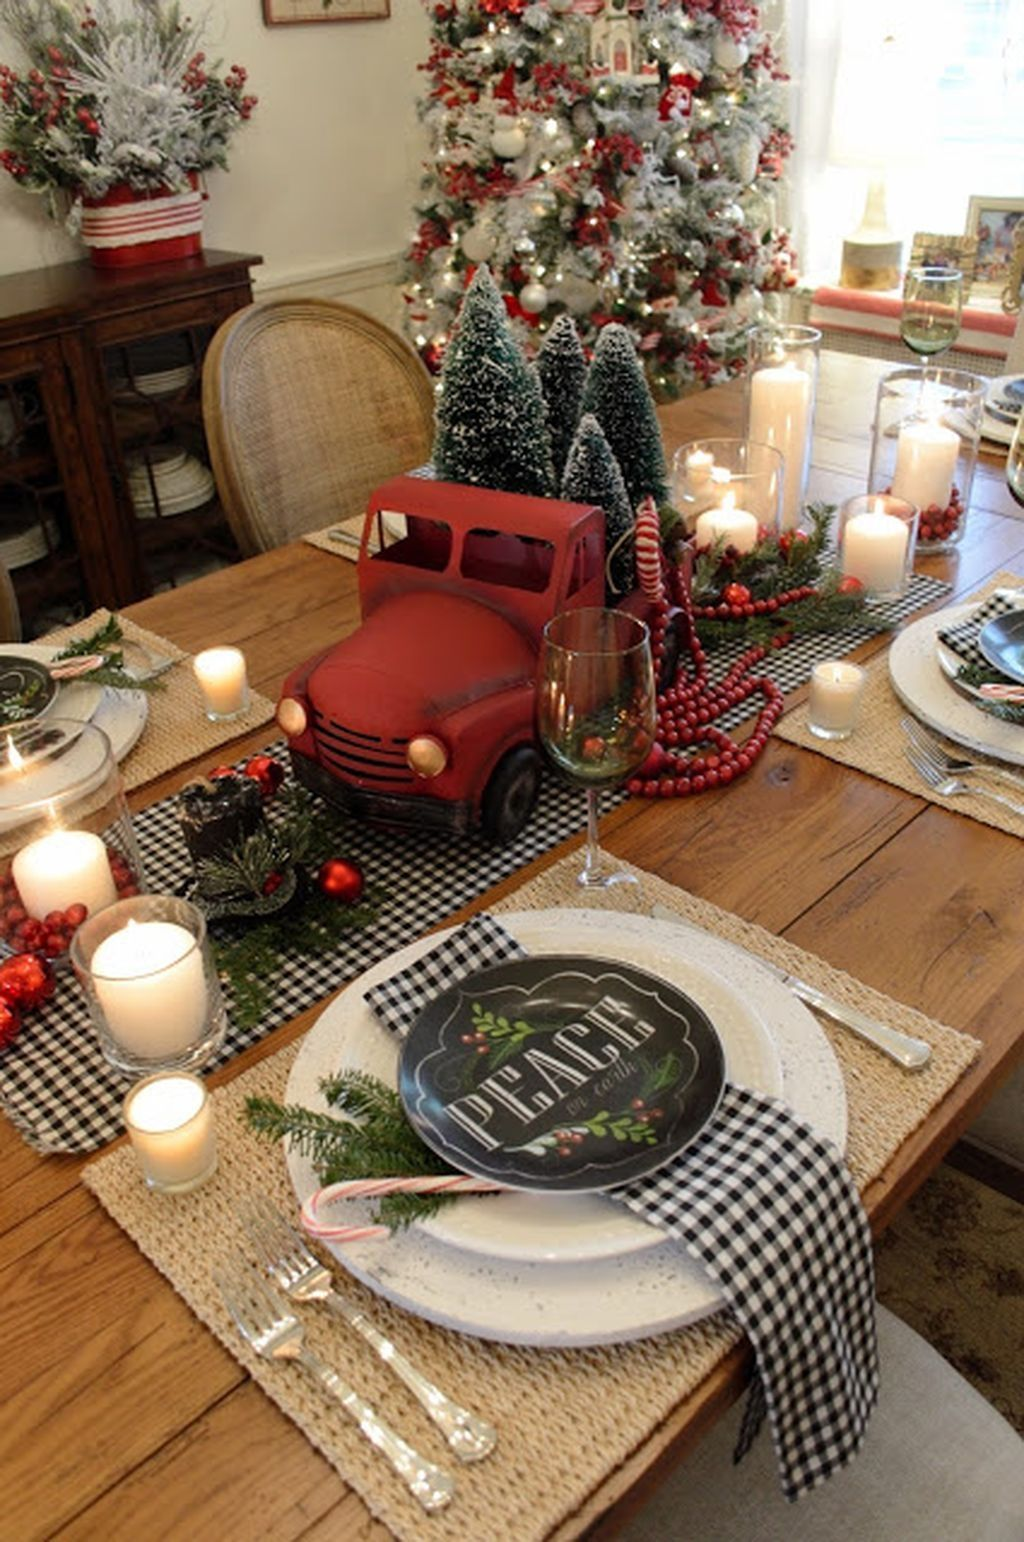 Cool 99 Stunning Kitchen Table Christmas Centerpieces Ideas More At Http 99homy